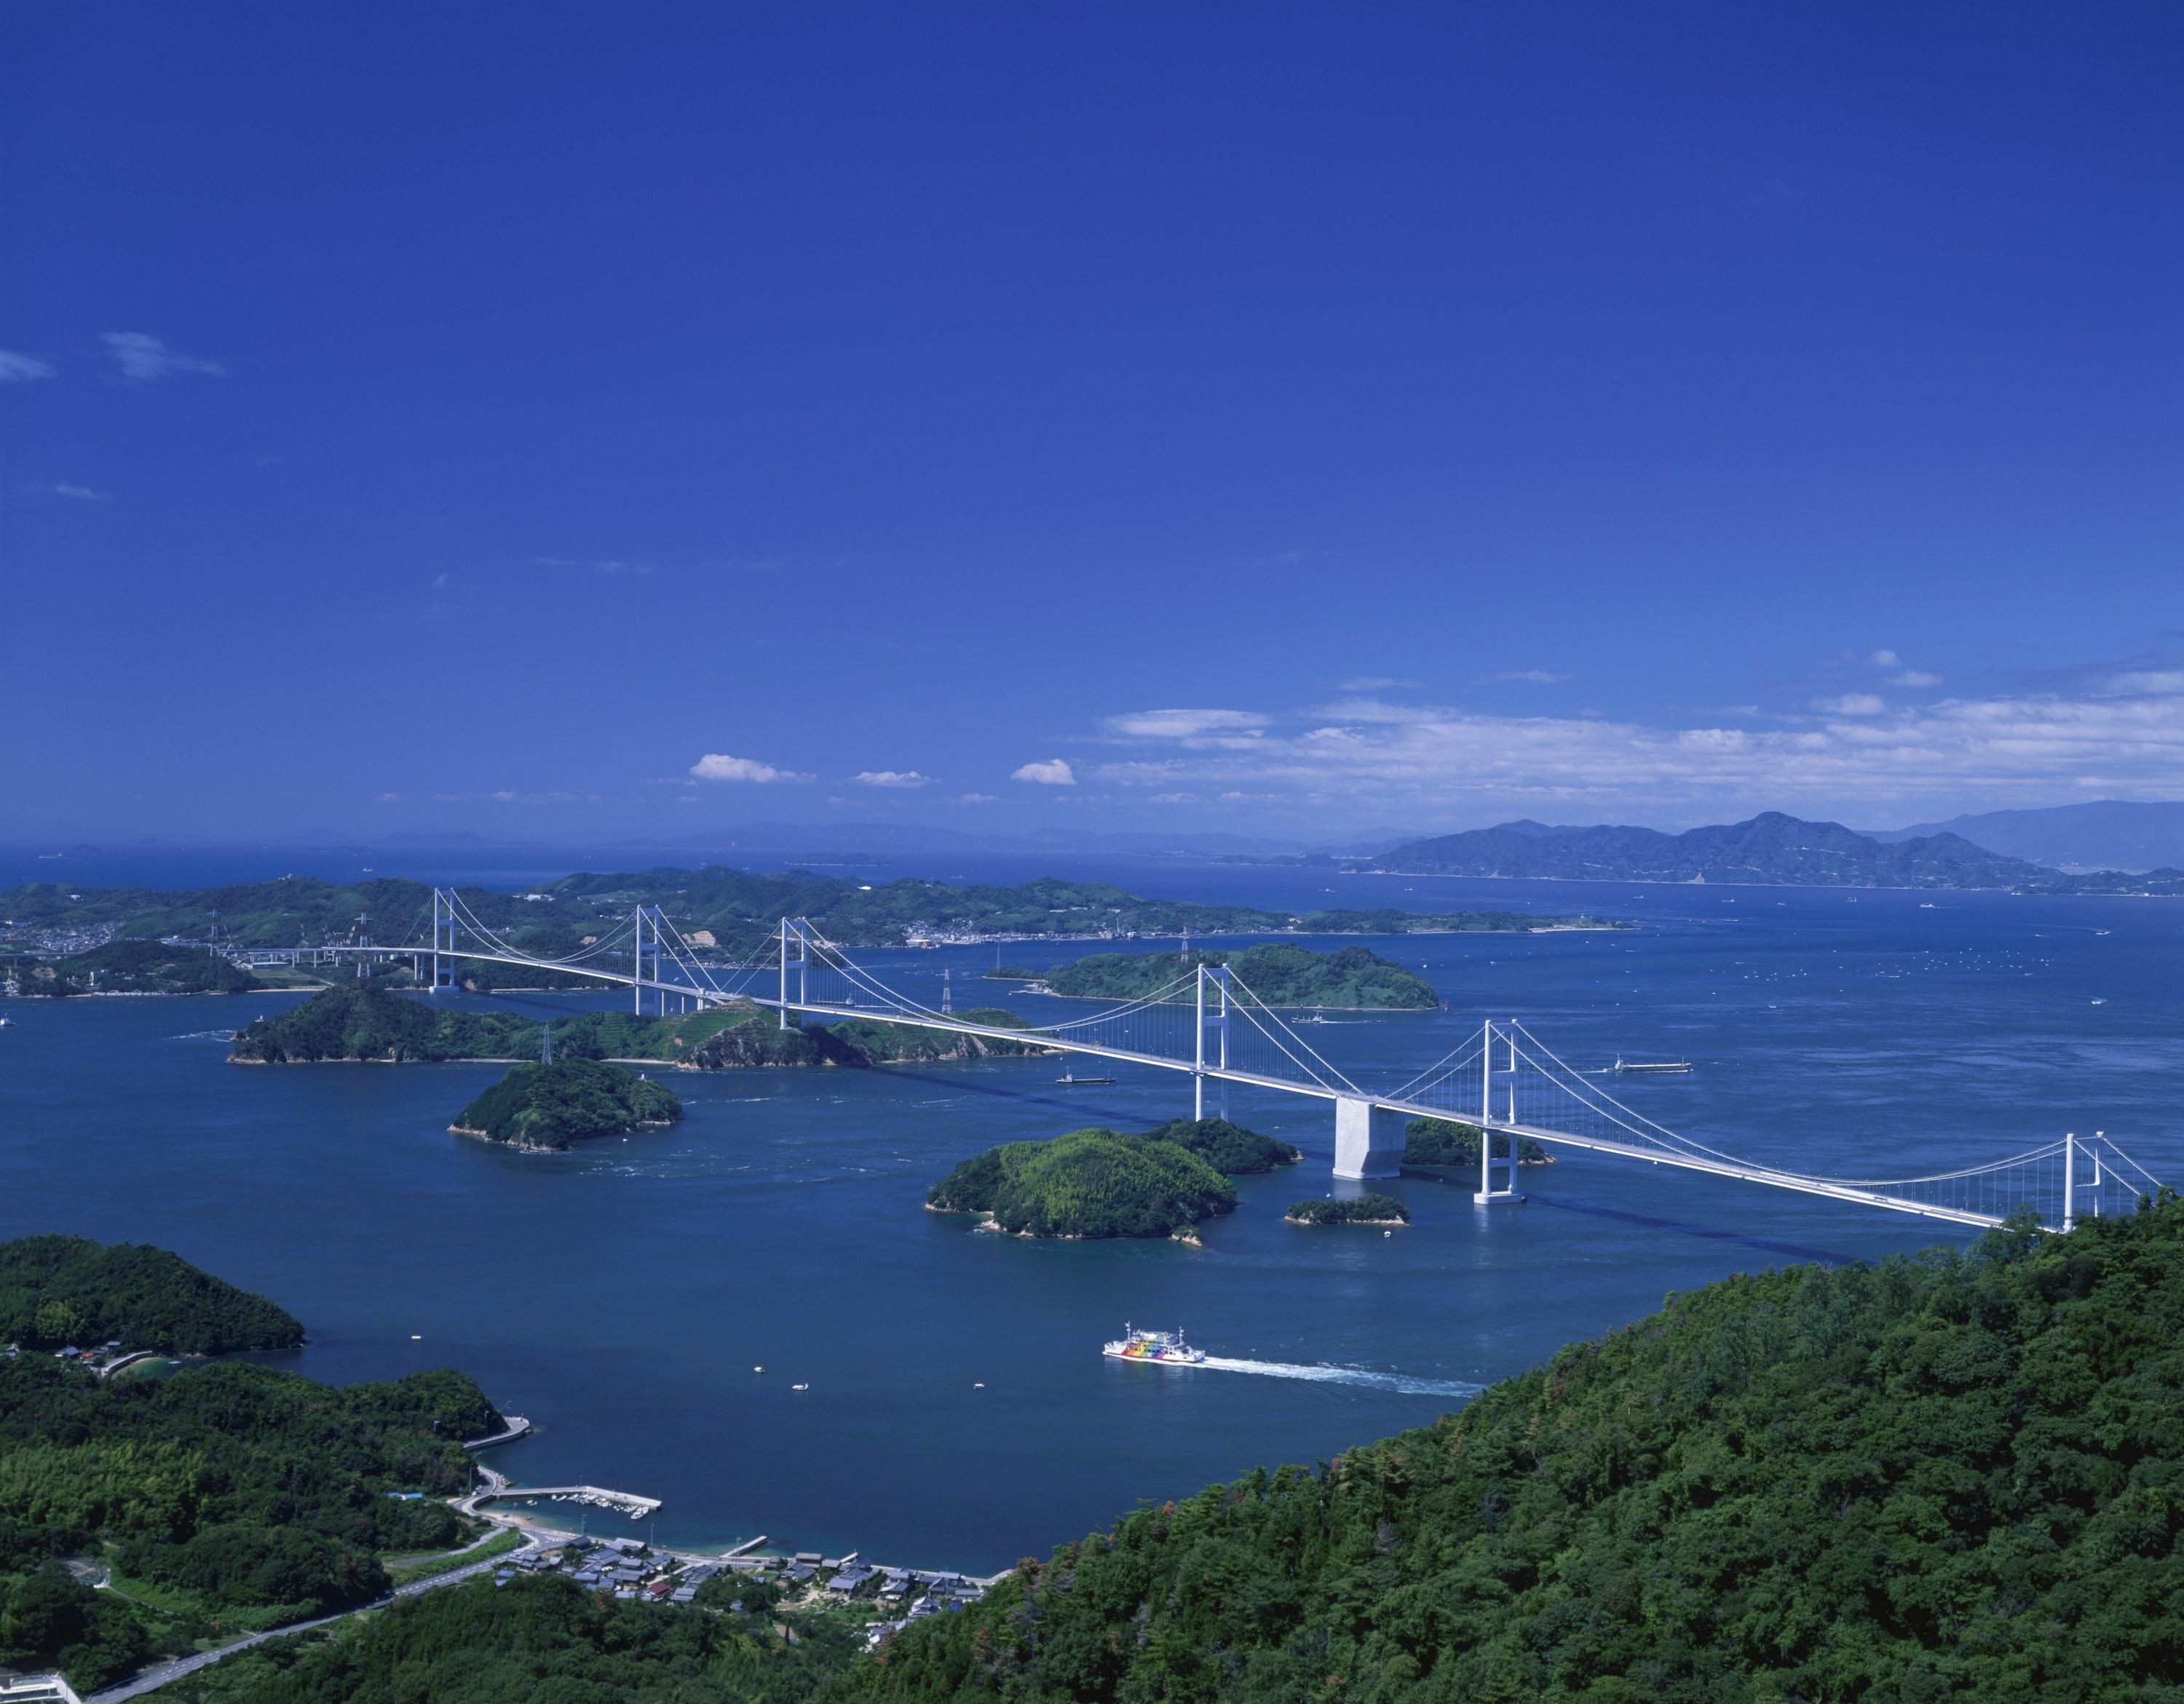 At first glance it would appear biking on these roads would be dangerous, but the <strong>Shimanami Kaido</strong> in Japan is separated from the road. This means riders can enjoy the 40 mile road through a series of bridges and scenic islands at their own pace.